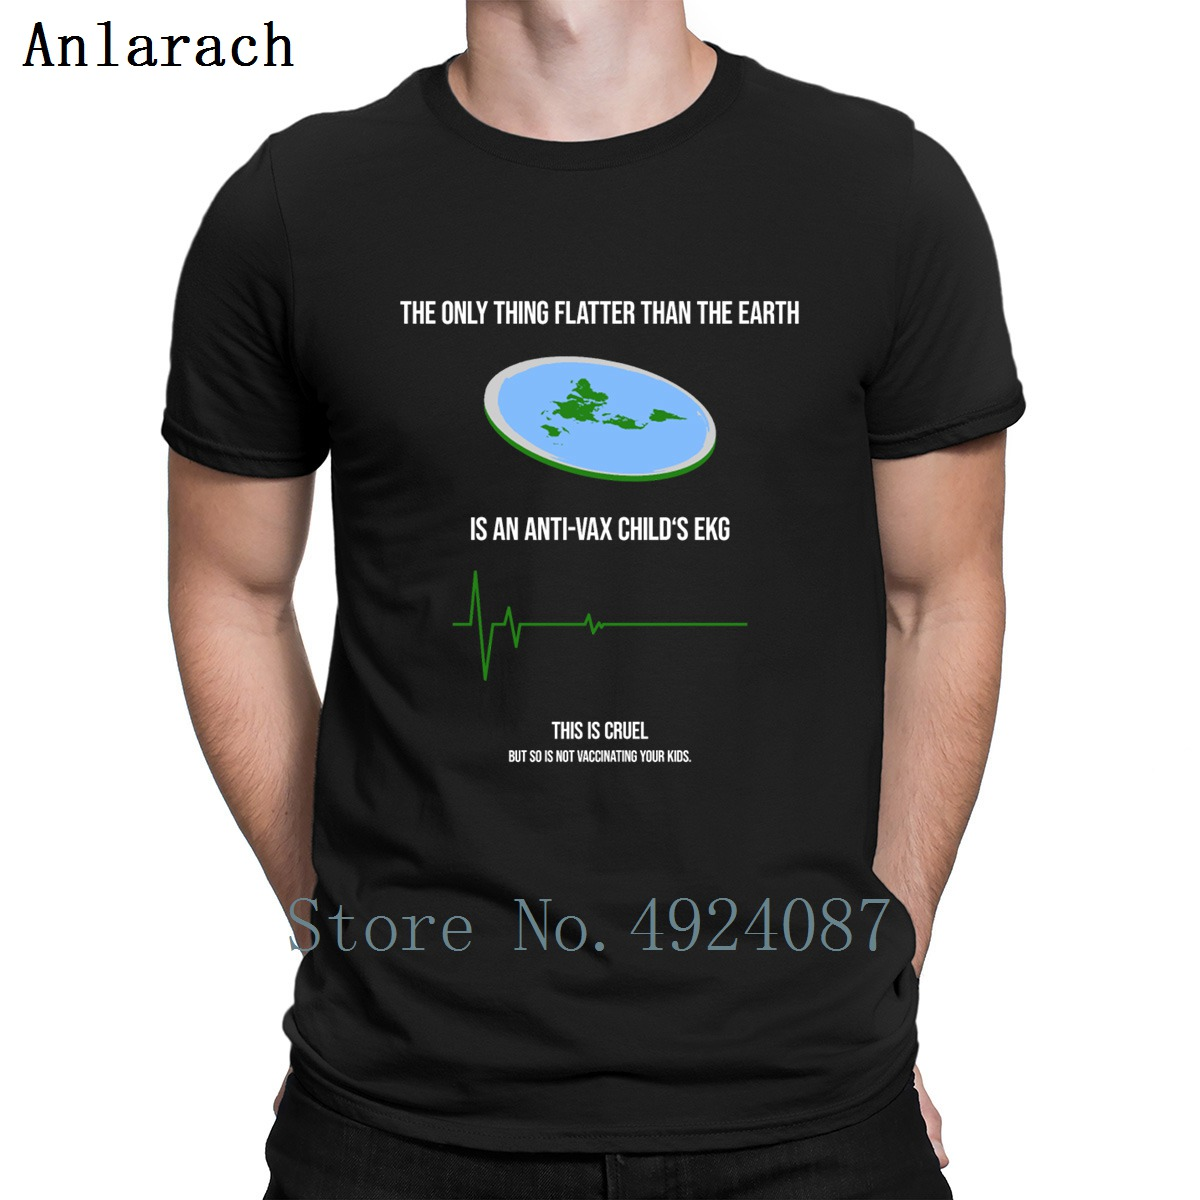 Anti Vax Flat Earth   T     Shirt   Slogan Summer 2019 Cotton Designer   T     Shirts   Costume Male New Fit